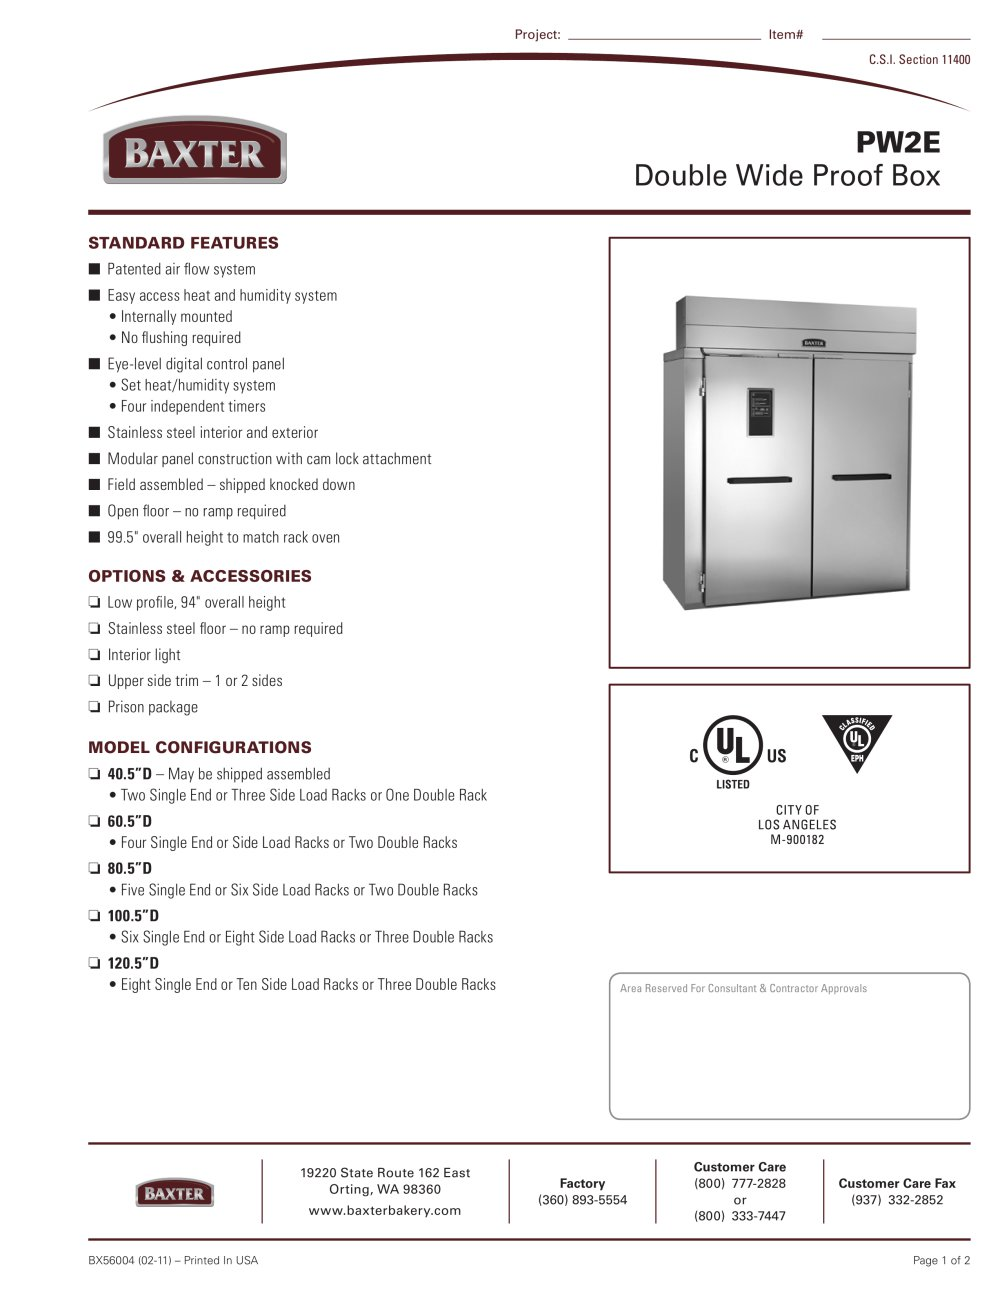 PW2E - Double Wide Proof Box - BAXTER - PDF Catalogues ... Hobart Ov G Wiring Diagram on hobart dishwasher schematics, hobart c44a wiring schematic, hobart parts, hobart dishwasher electrical wiring,